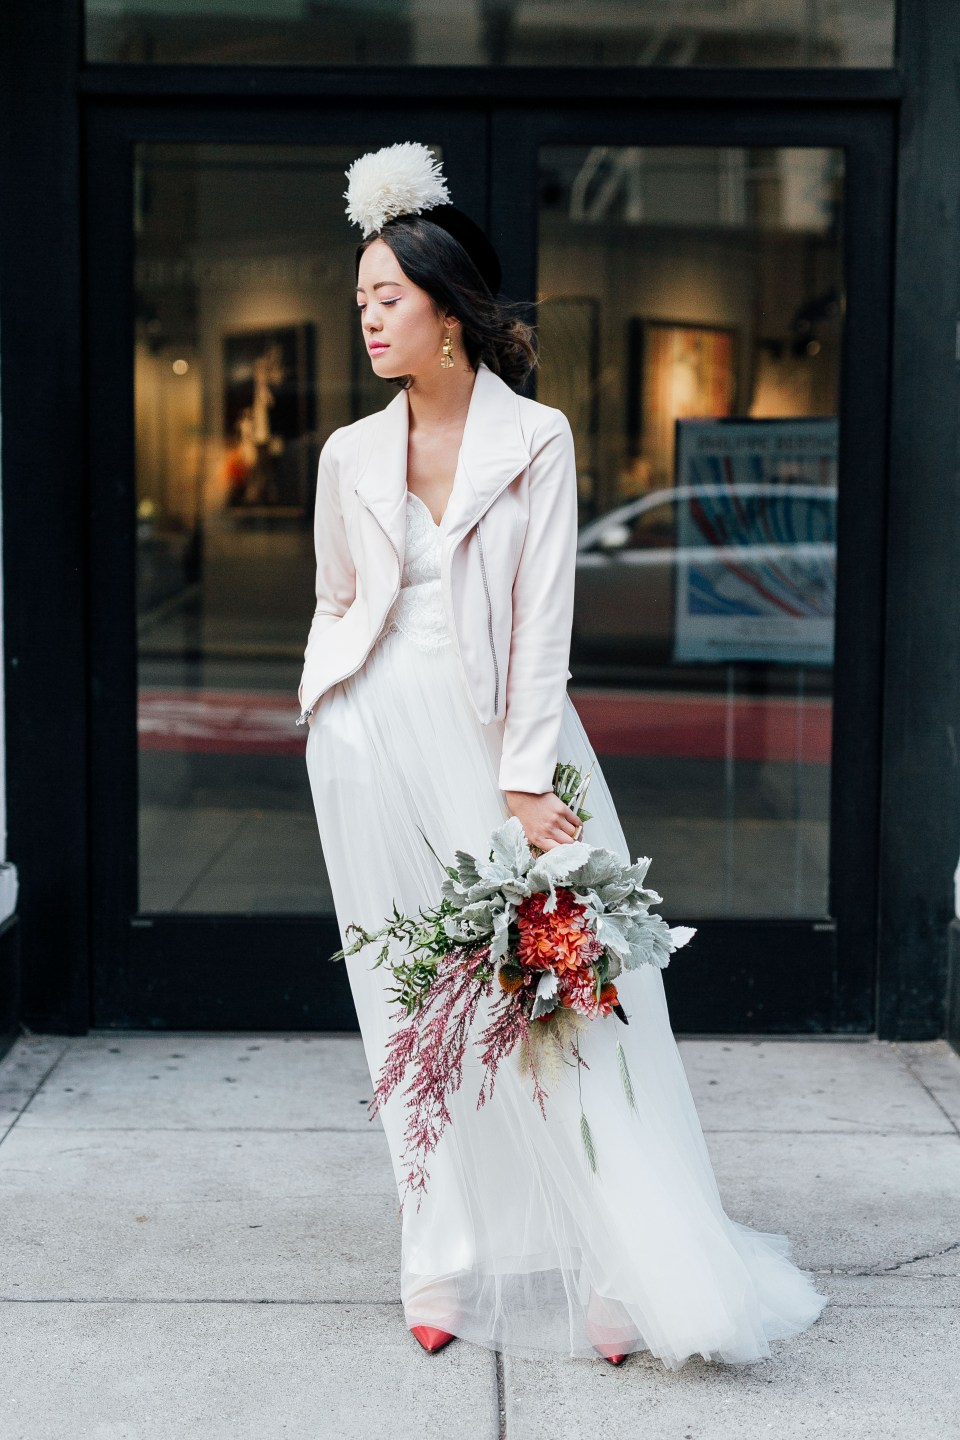 Ethically styled woman stands on street, holding bouquet